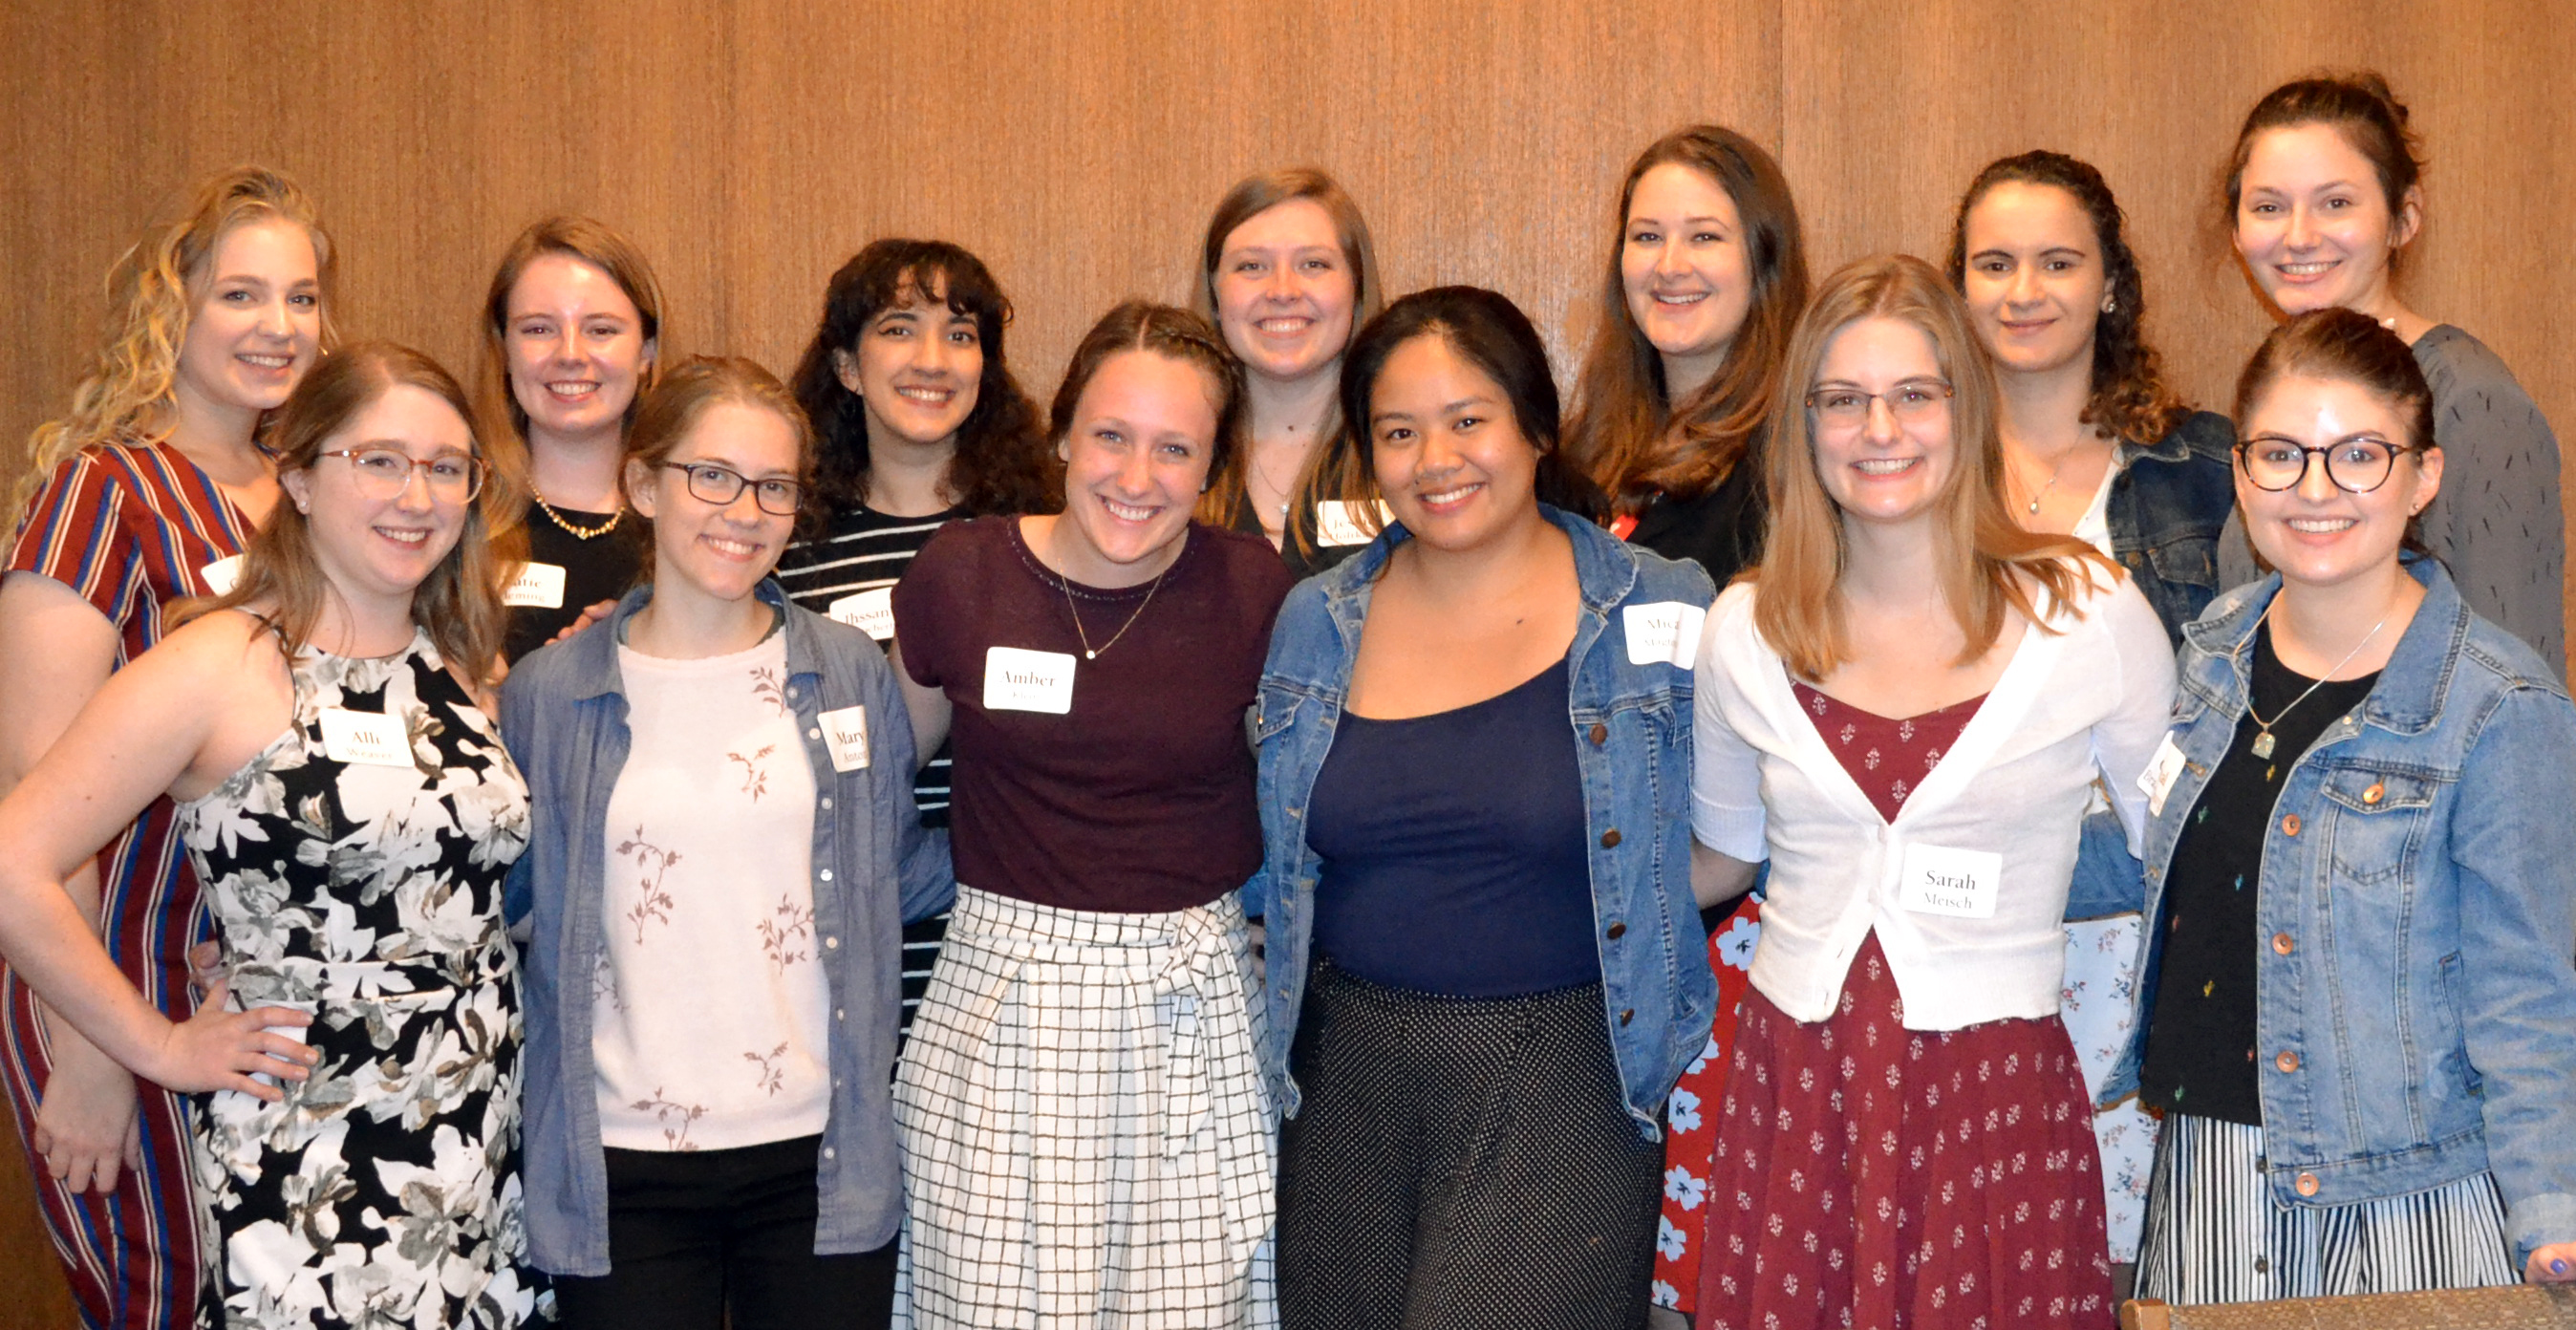 Students pose for a picture after the Year-End Dinner celebration.